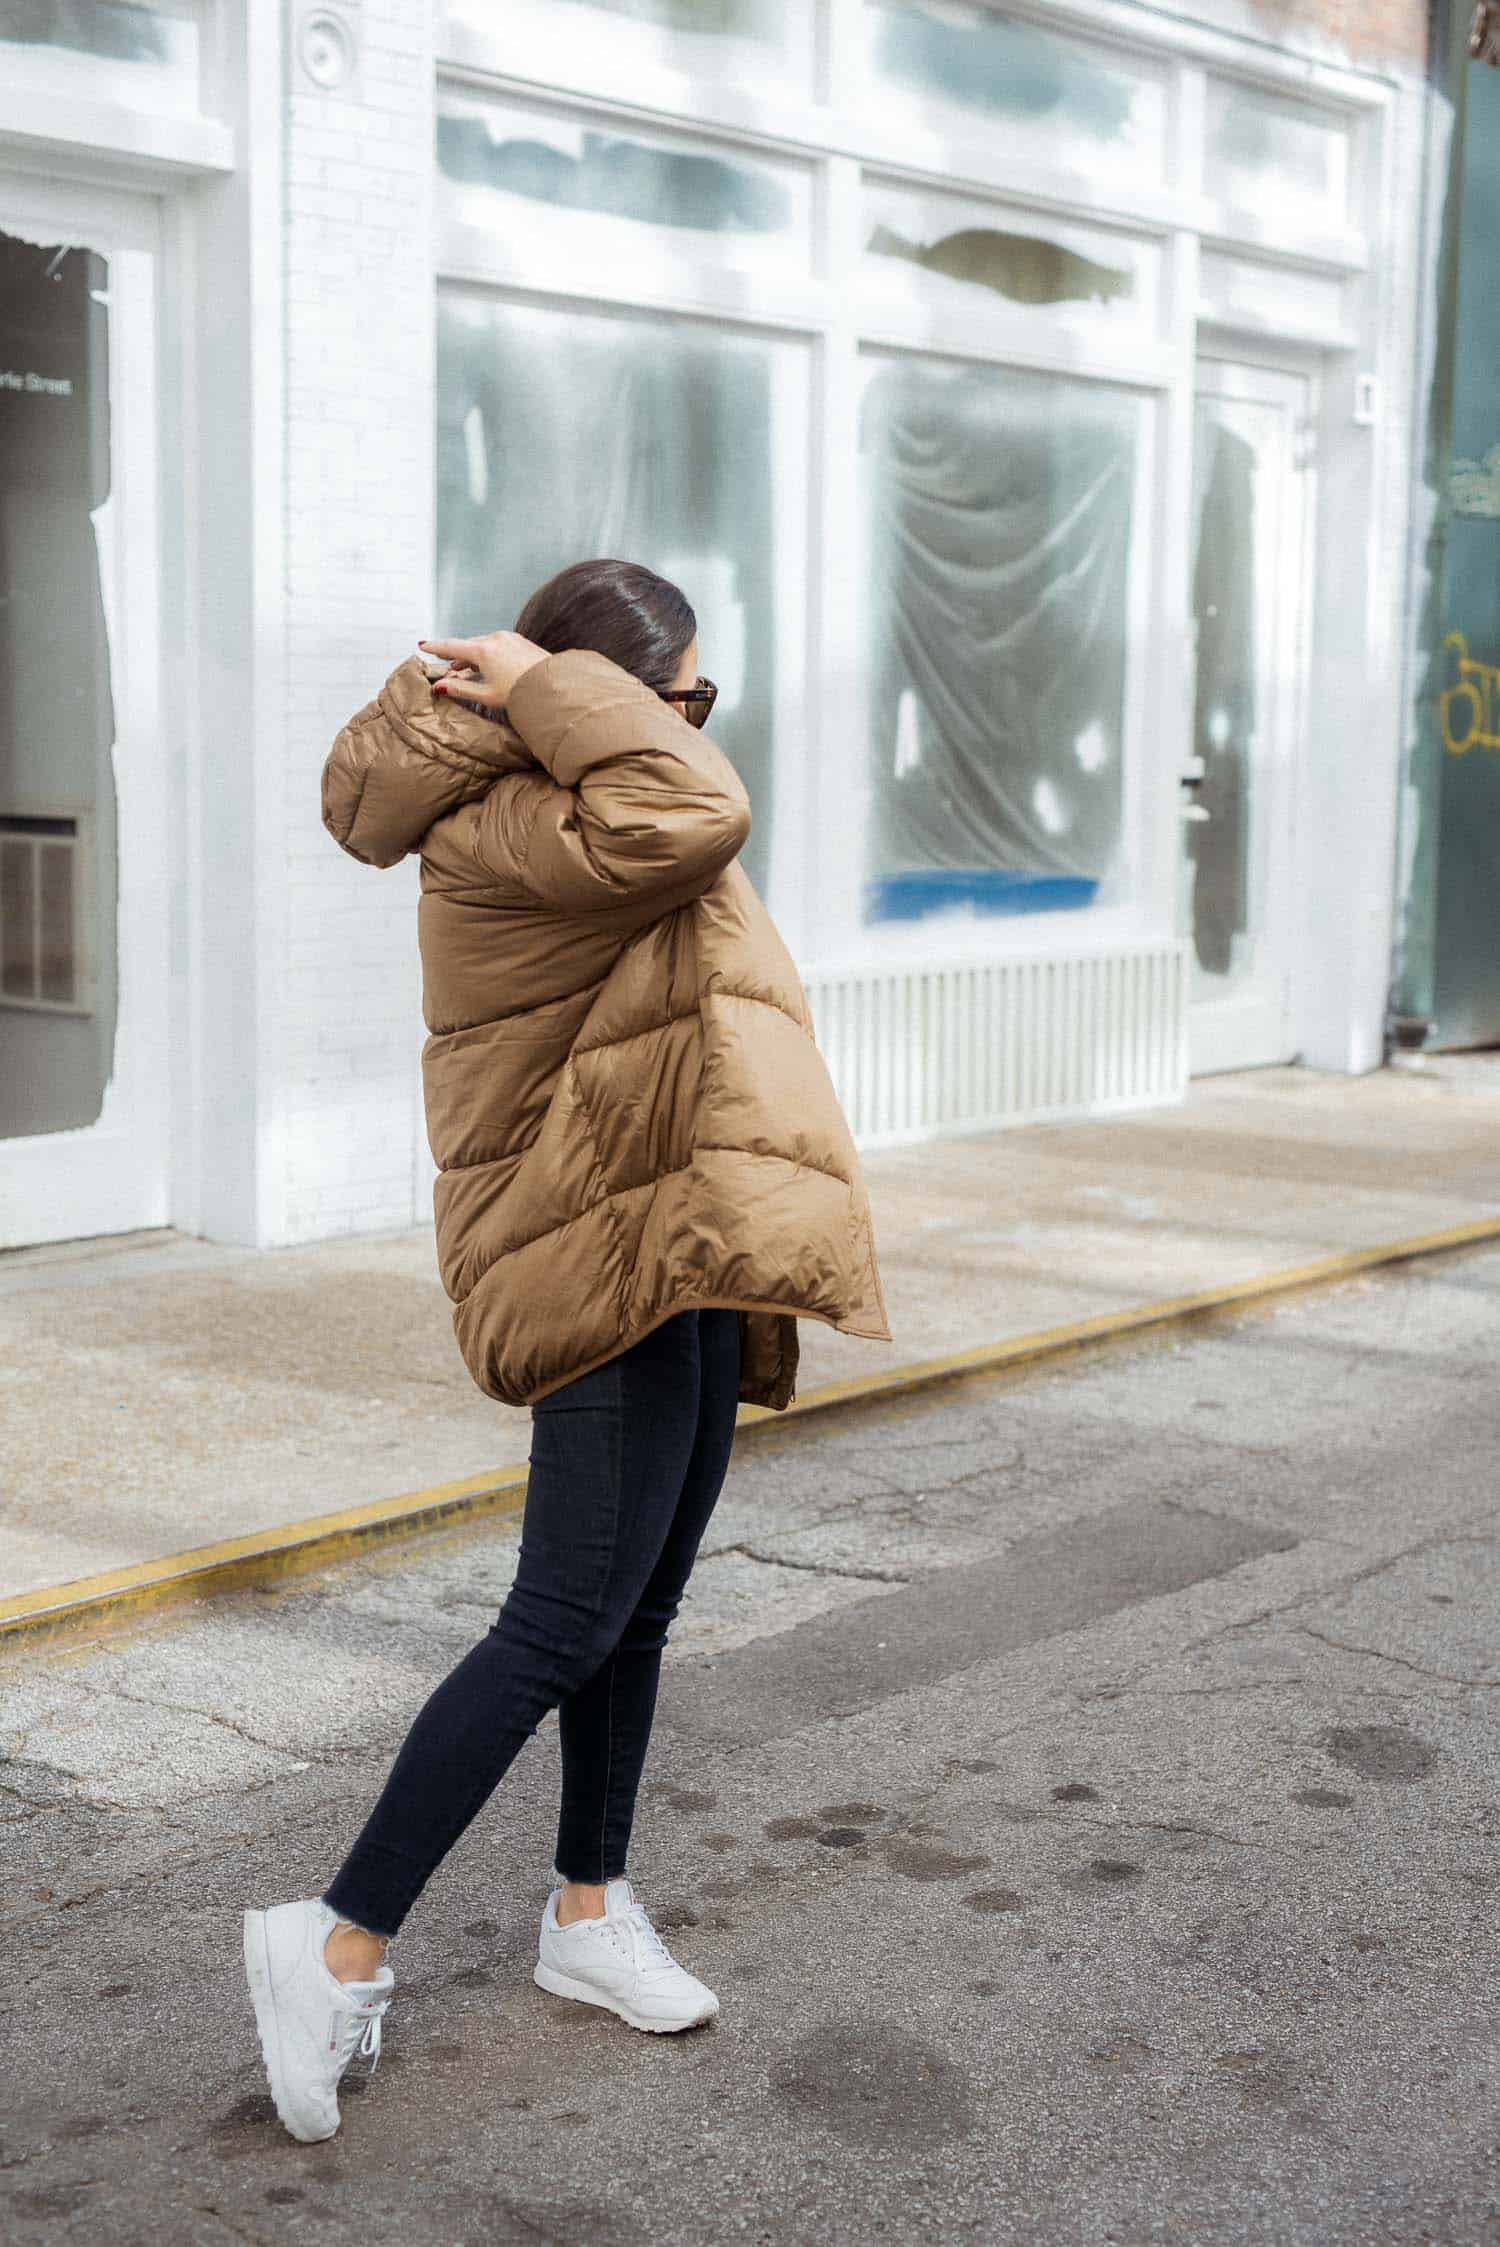 Jessica wearing a puffy coat, skinny jeans, and white Reeboks.